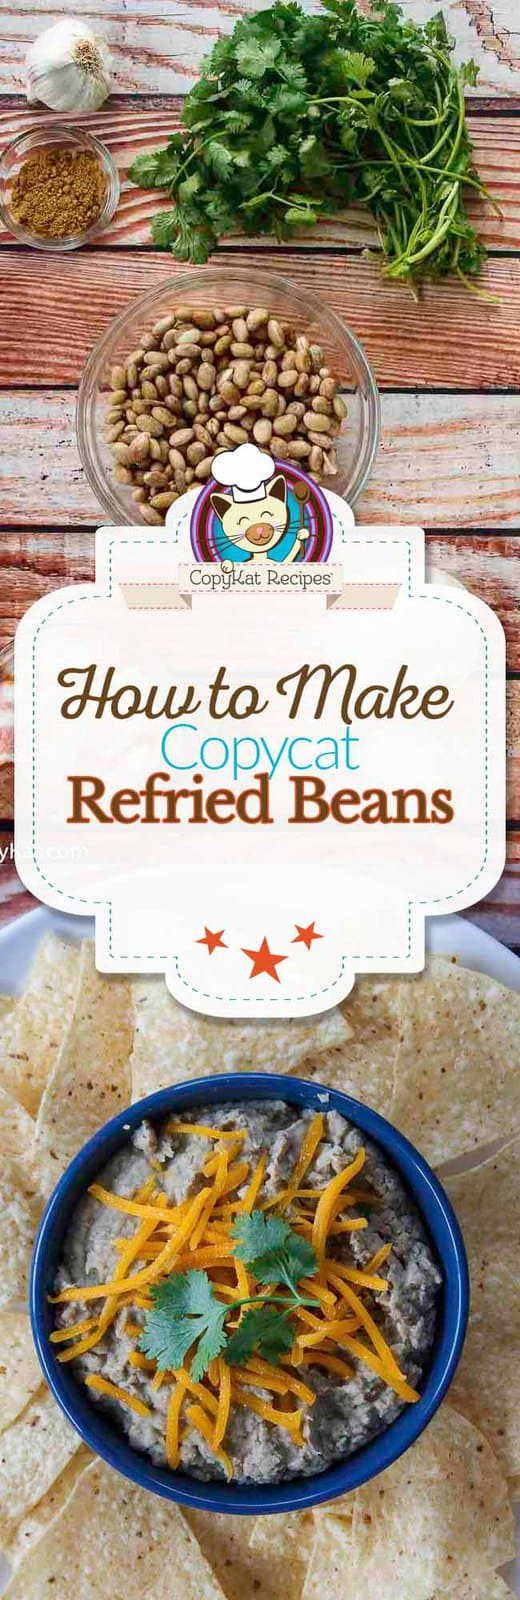 Make refried beans that taste just like a restaurant with this easy side dish recipe.